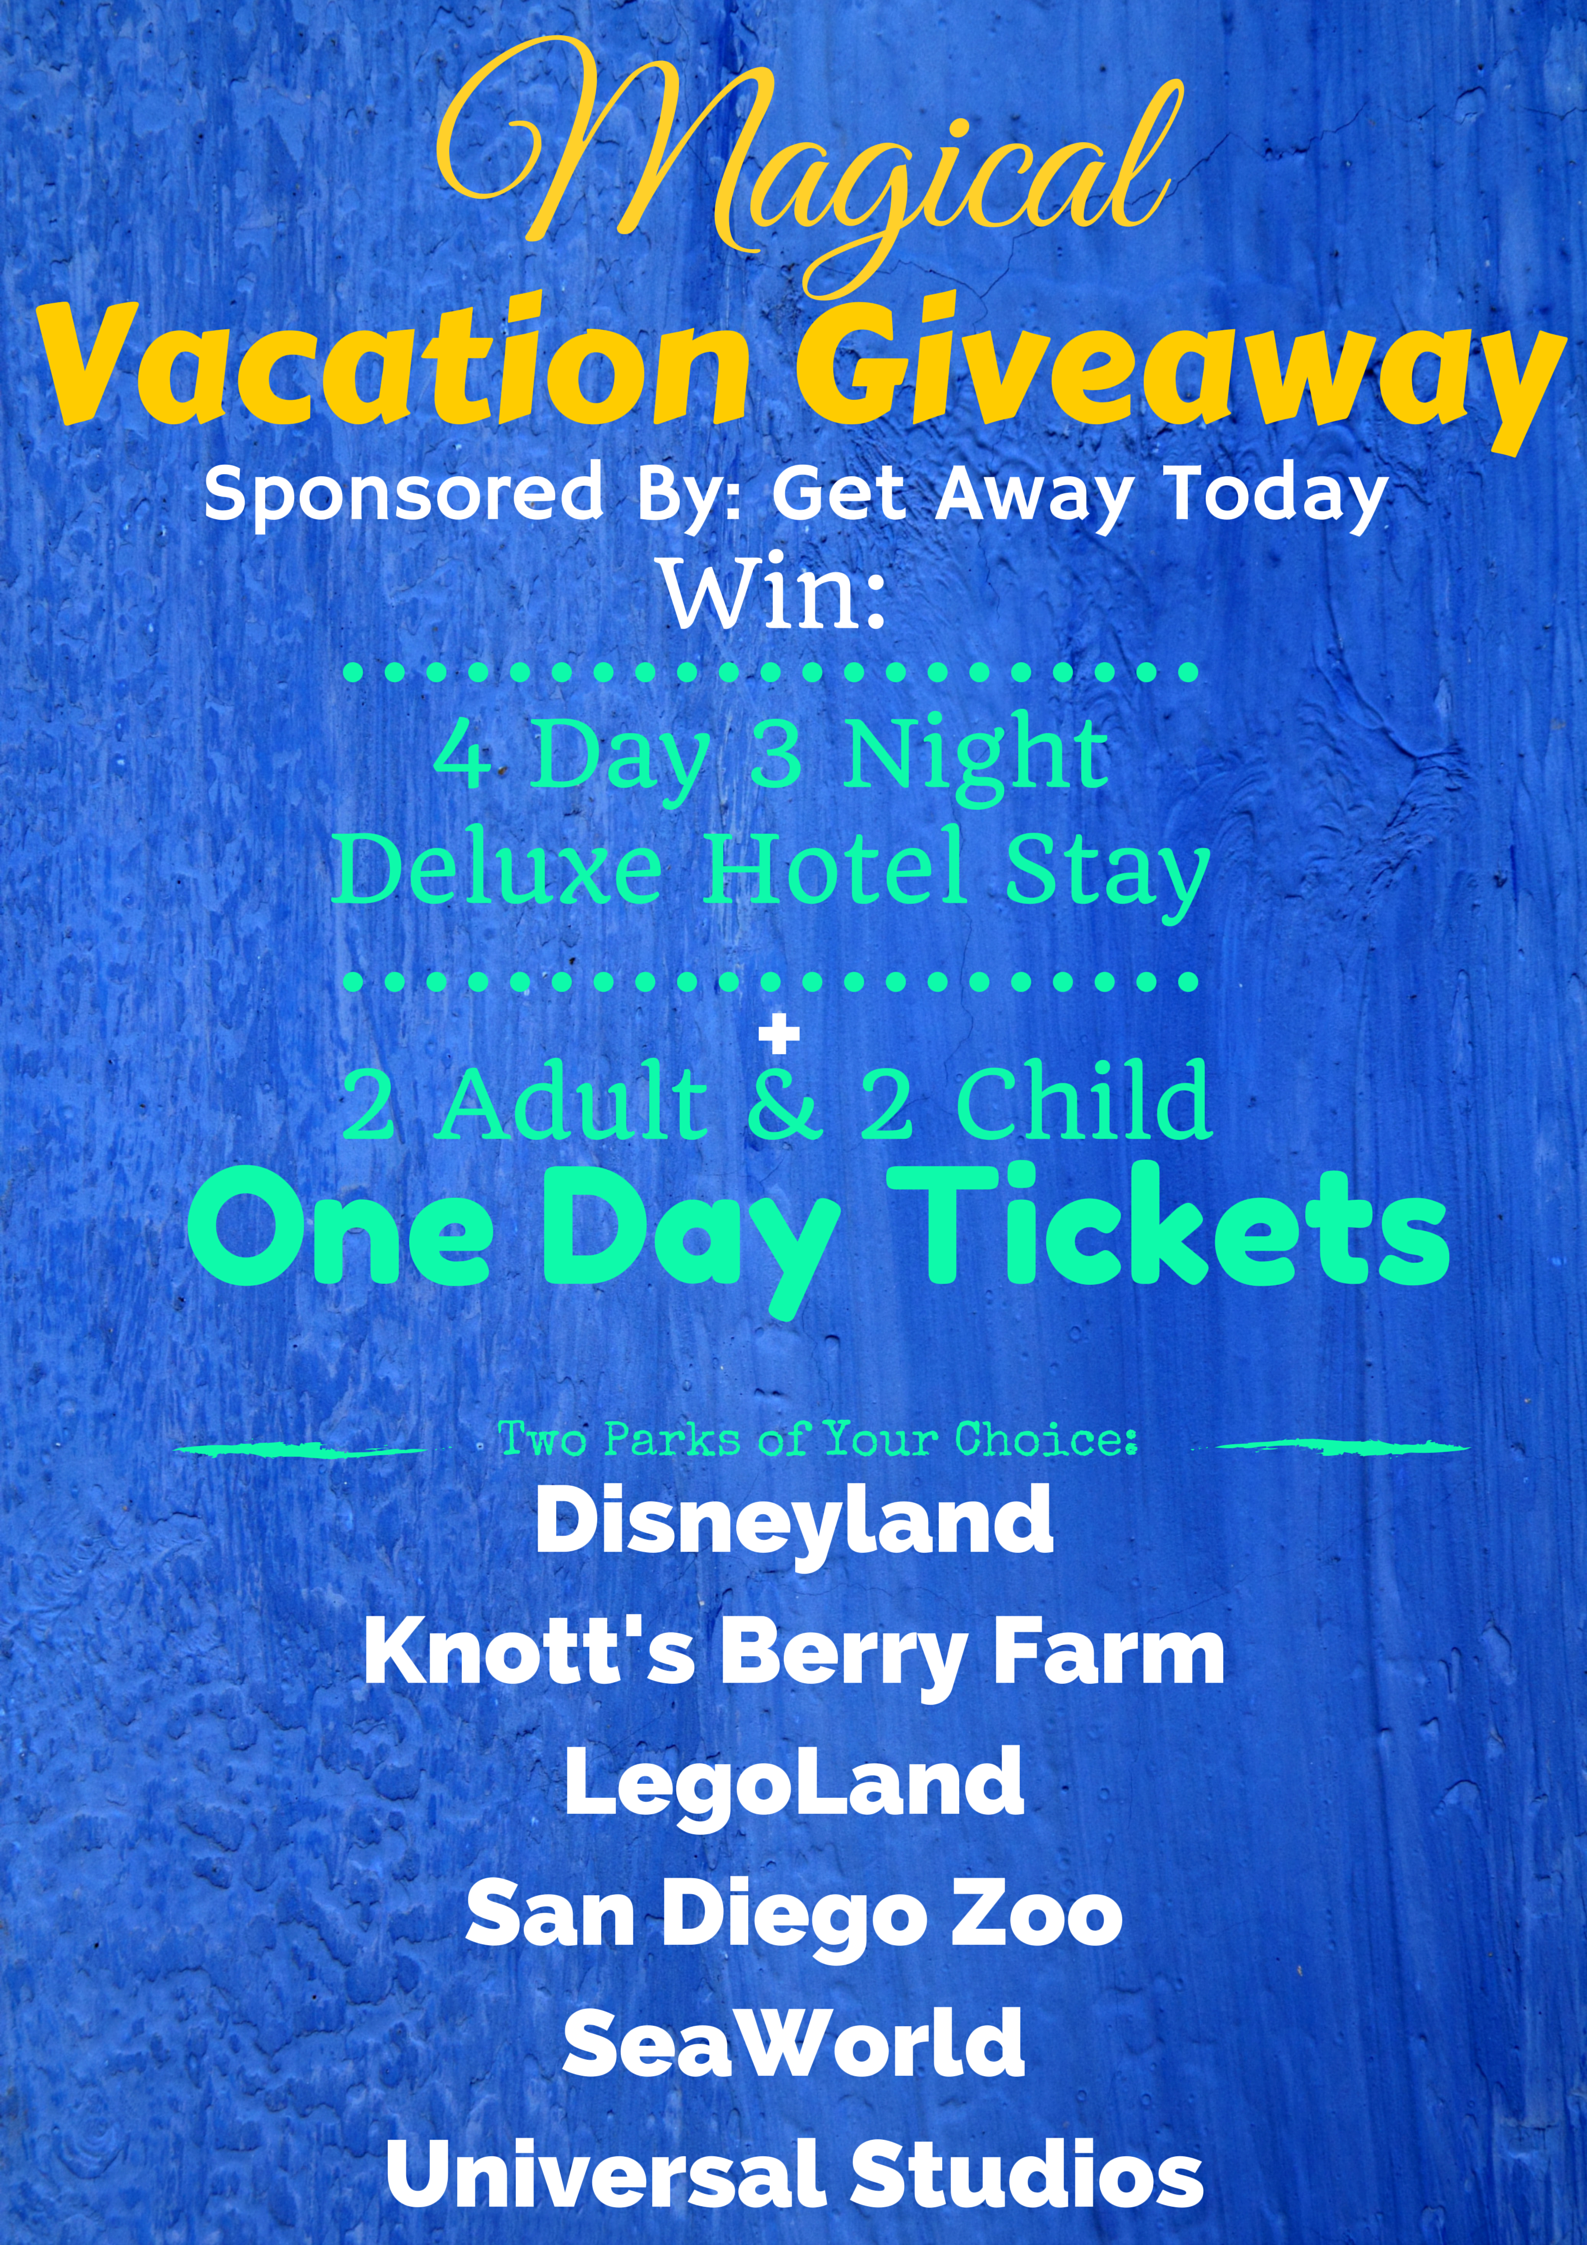 Magical Vacation Giveaway package worth $1500 to Southern California ending July 20th 2015